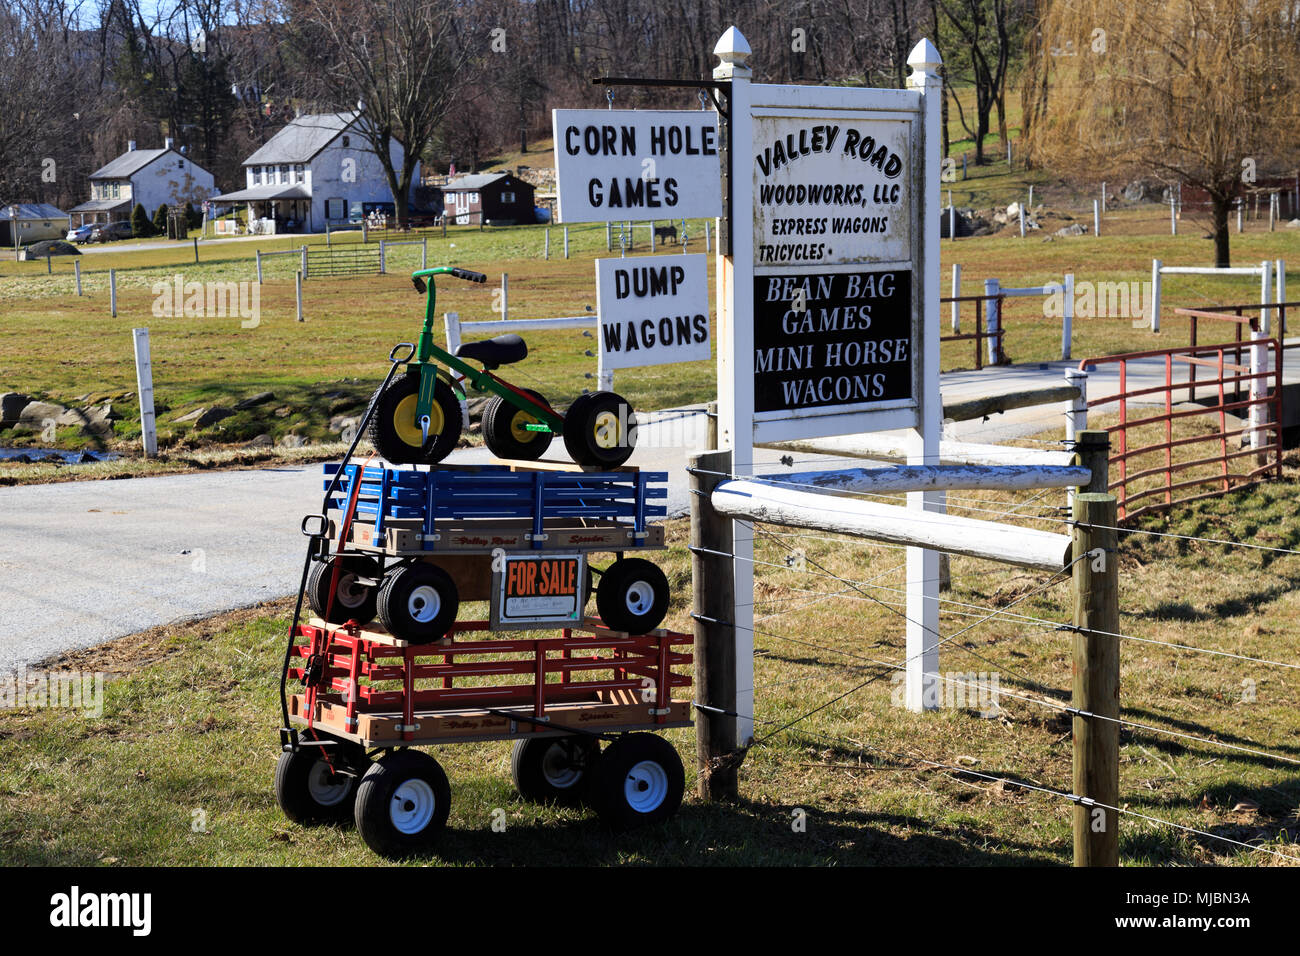 Bart, PA, USA - March 1, 2016: A tricycle stacked on wagons at the end of a rural farm lane in Lancaster County, PA. - Stock Image